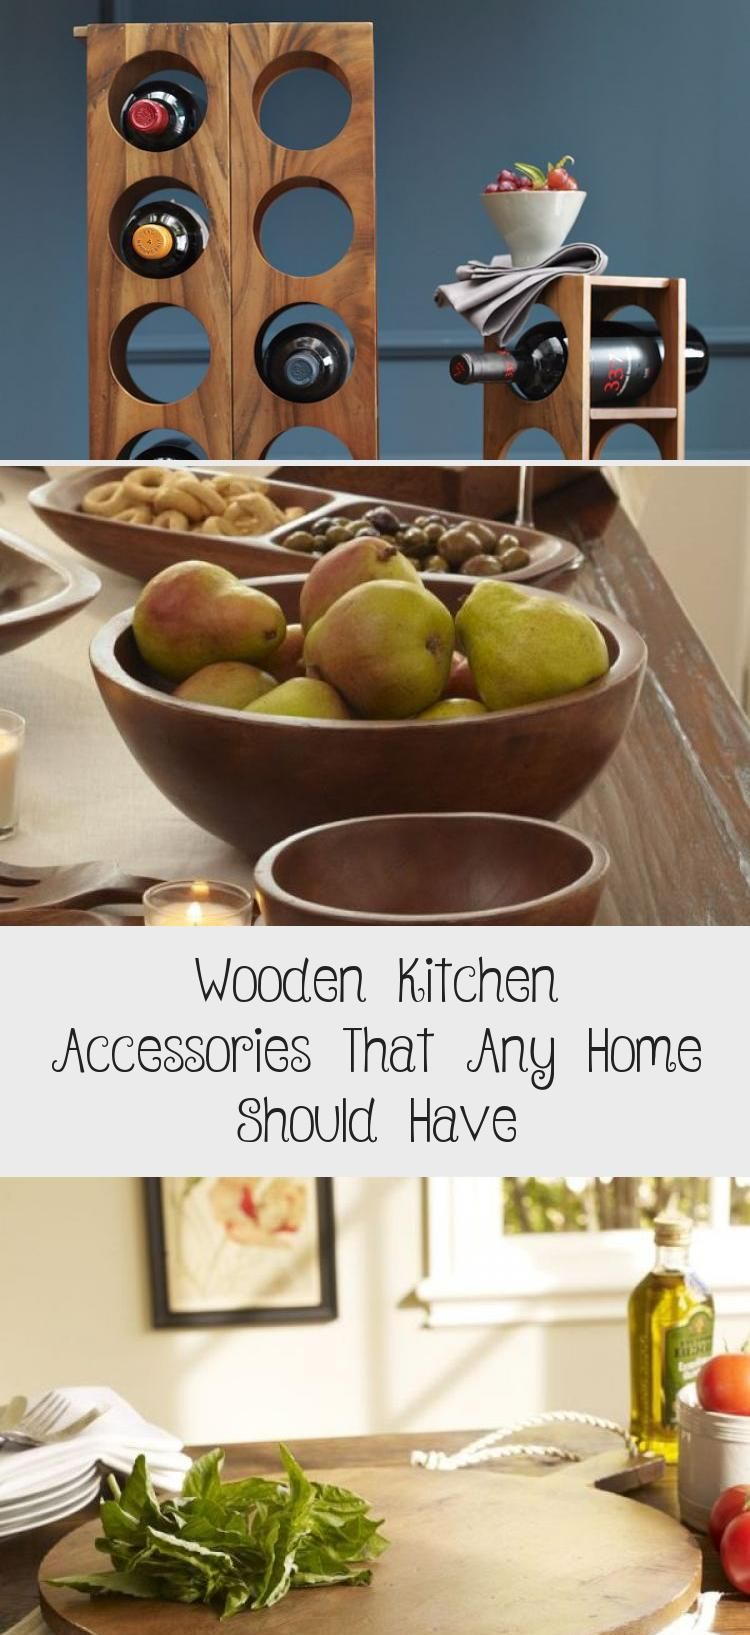 Wooden Kitchen Accessories That Any Home Should Have – KTCHN Kitchen